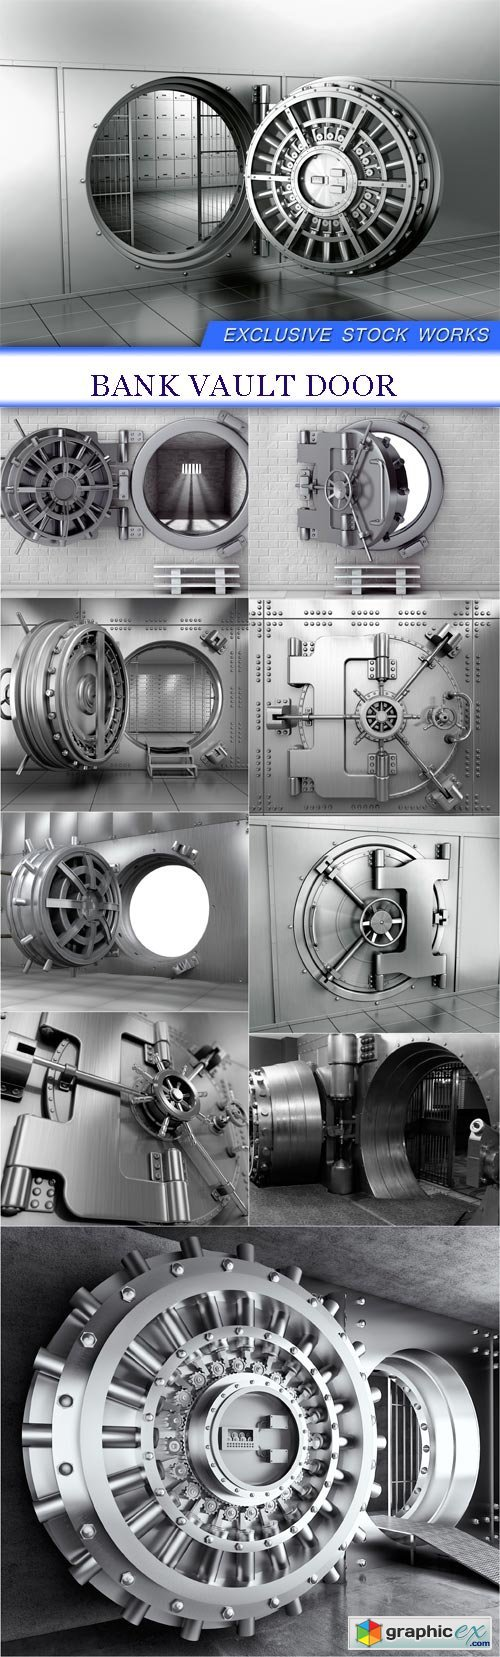 Bank Vault Door 10X JPEG